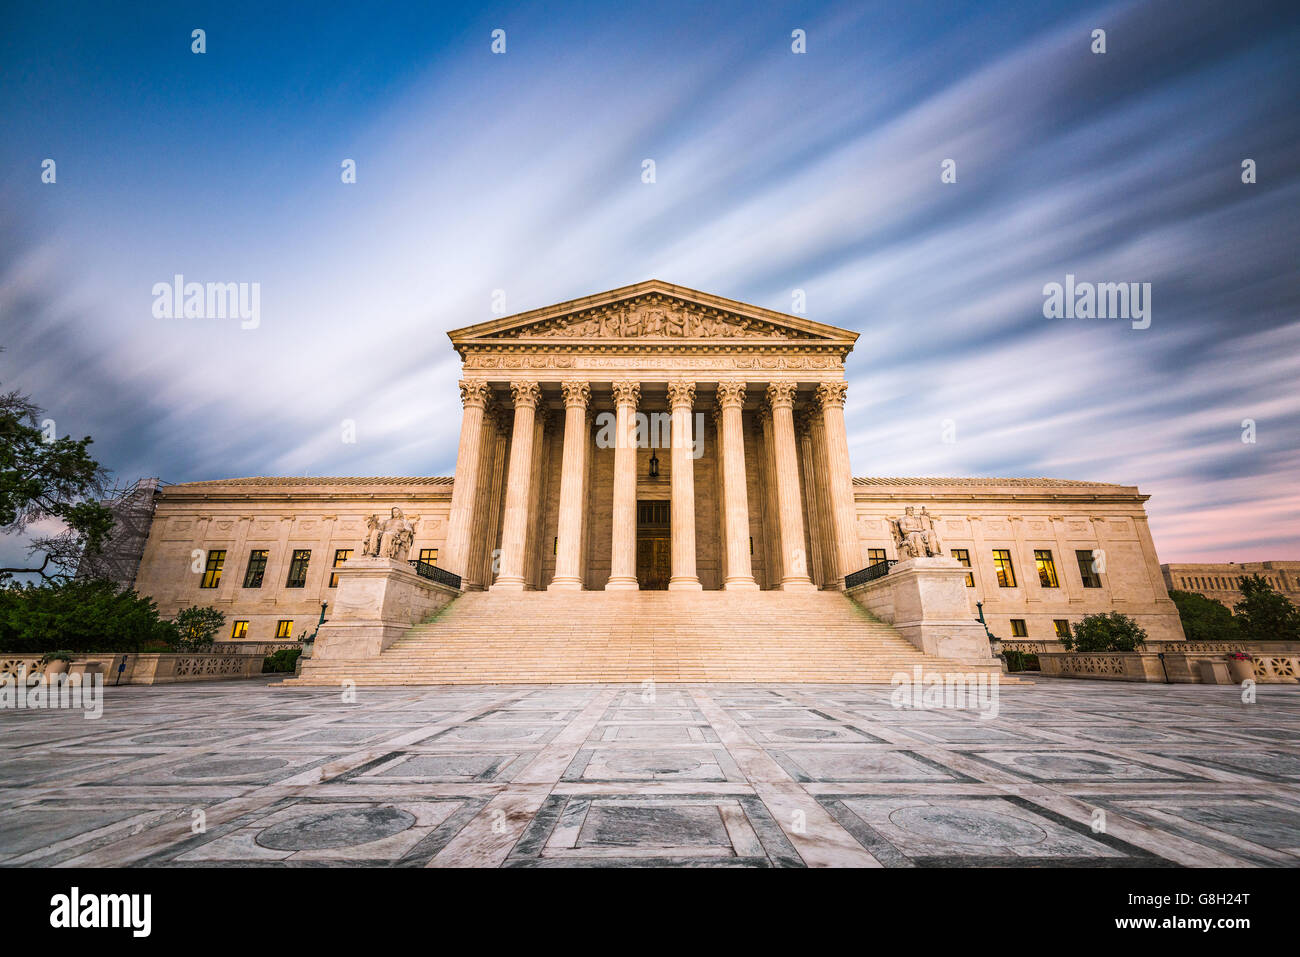 United States Supreme Court Building in Washington DC, USA. - Stock Image